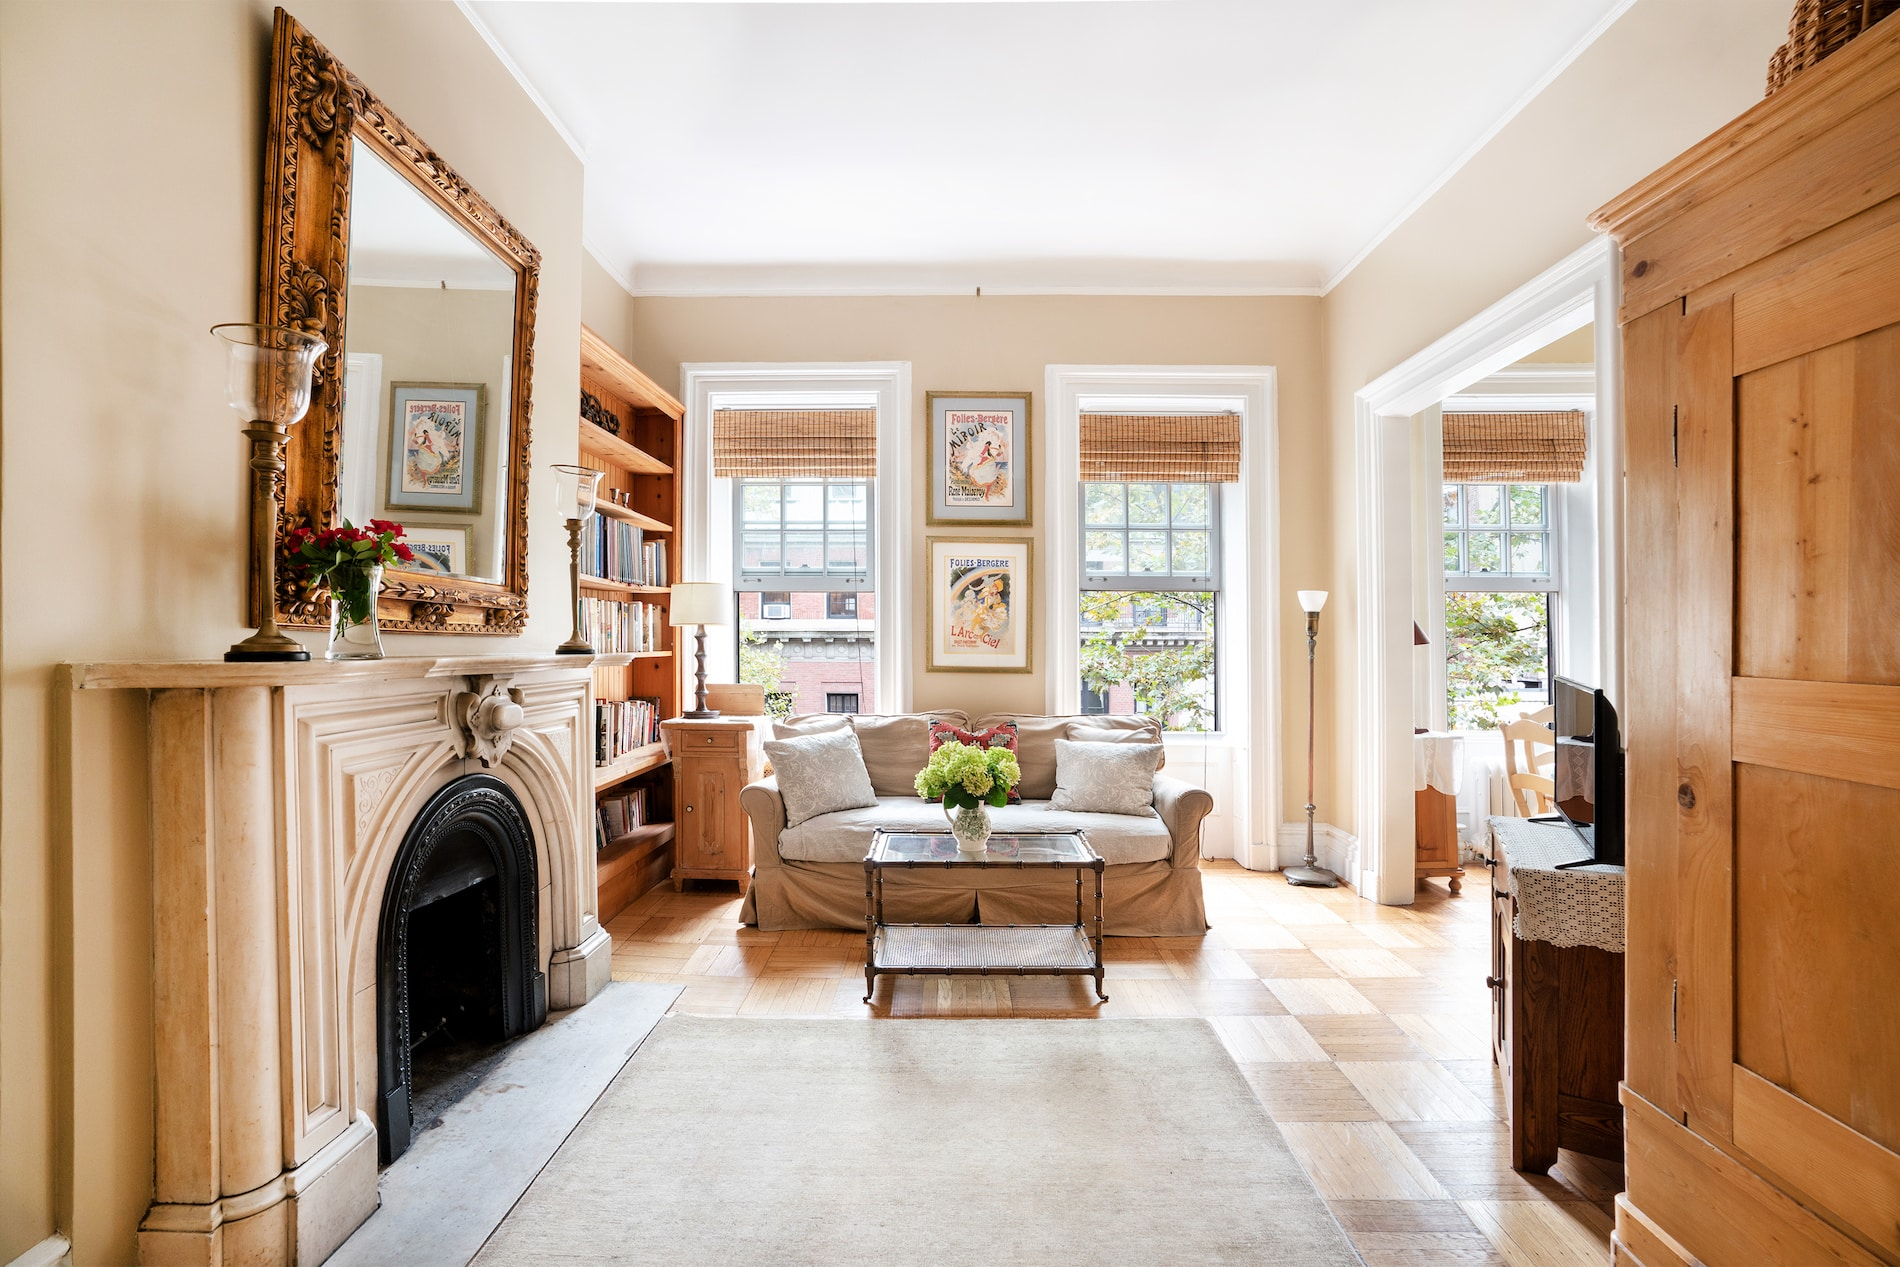 Well-lit sitting area with a tan & white sofa, glass coffee table, sitting chair, fireplace, bookshelves, & two tall windows